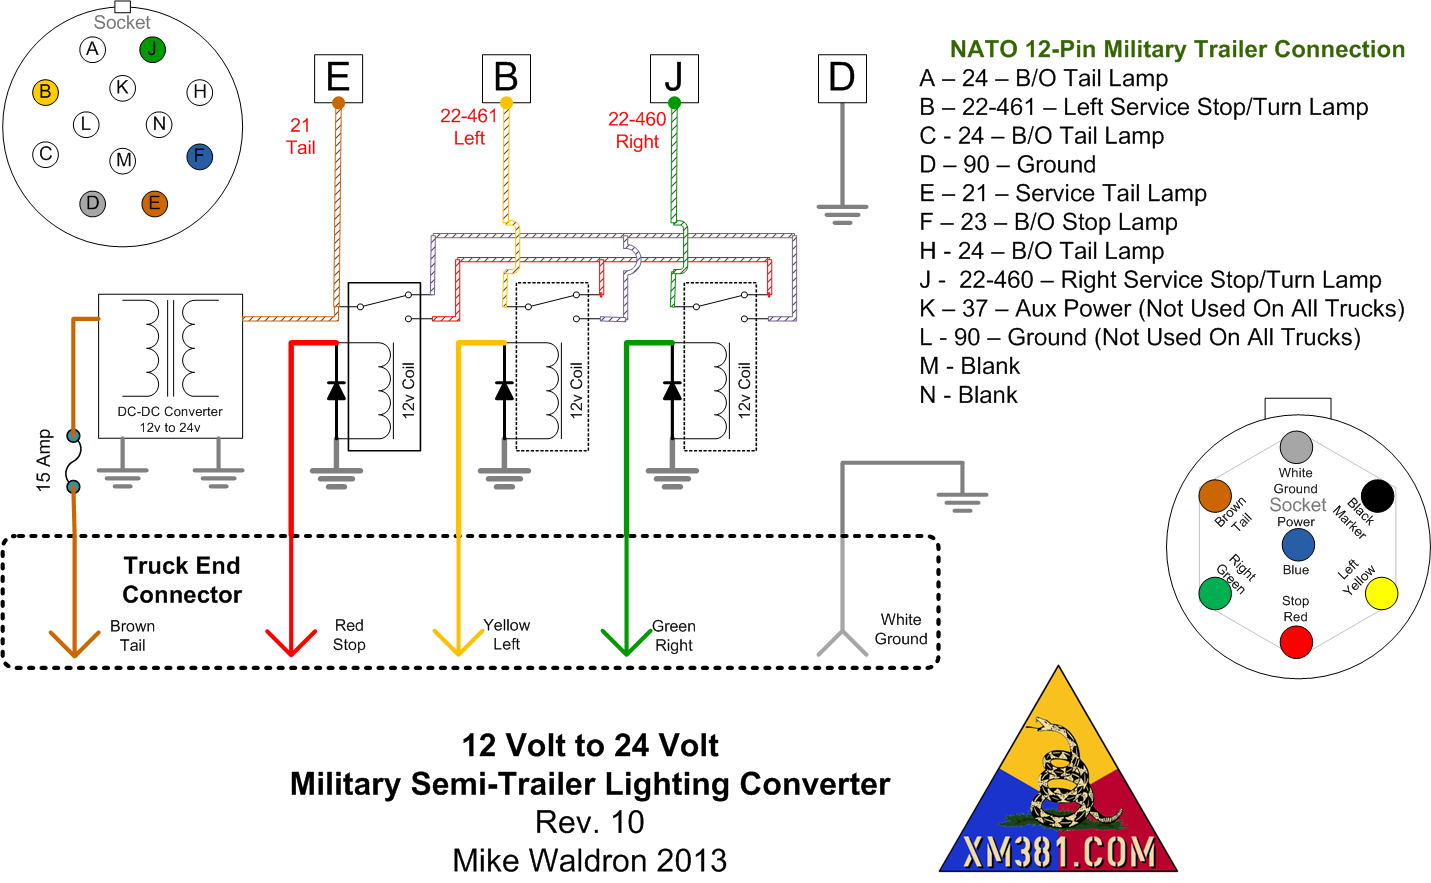 Xm381 12 Volt Civllian Truck To 24 Military Trailer Lighting Tractor Light Wiring 2v Semi